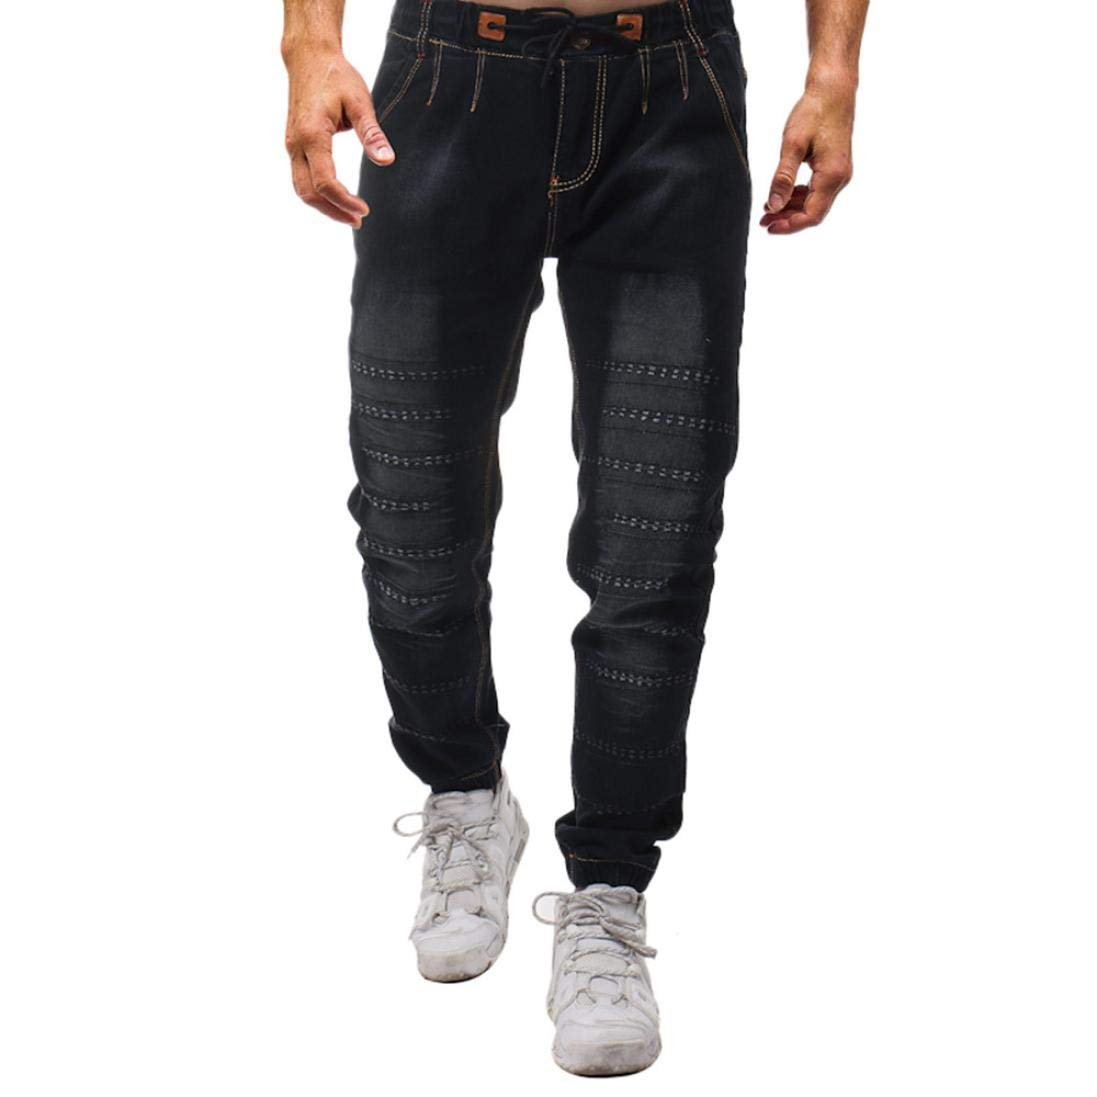 Realdo Hot!Clearance Sale Mens Casual Slim Personality Solid Elastic Splice Work Cargo Trousers Jeans Jogger Pants(30,Black) by Realdo (Image #1)